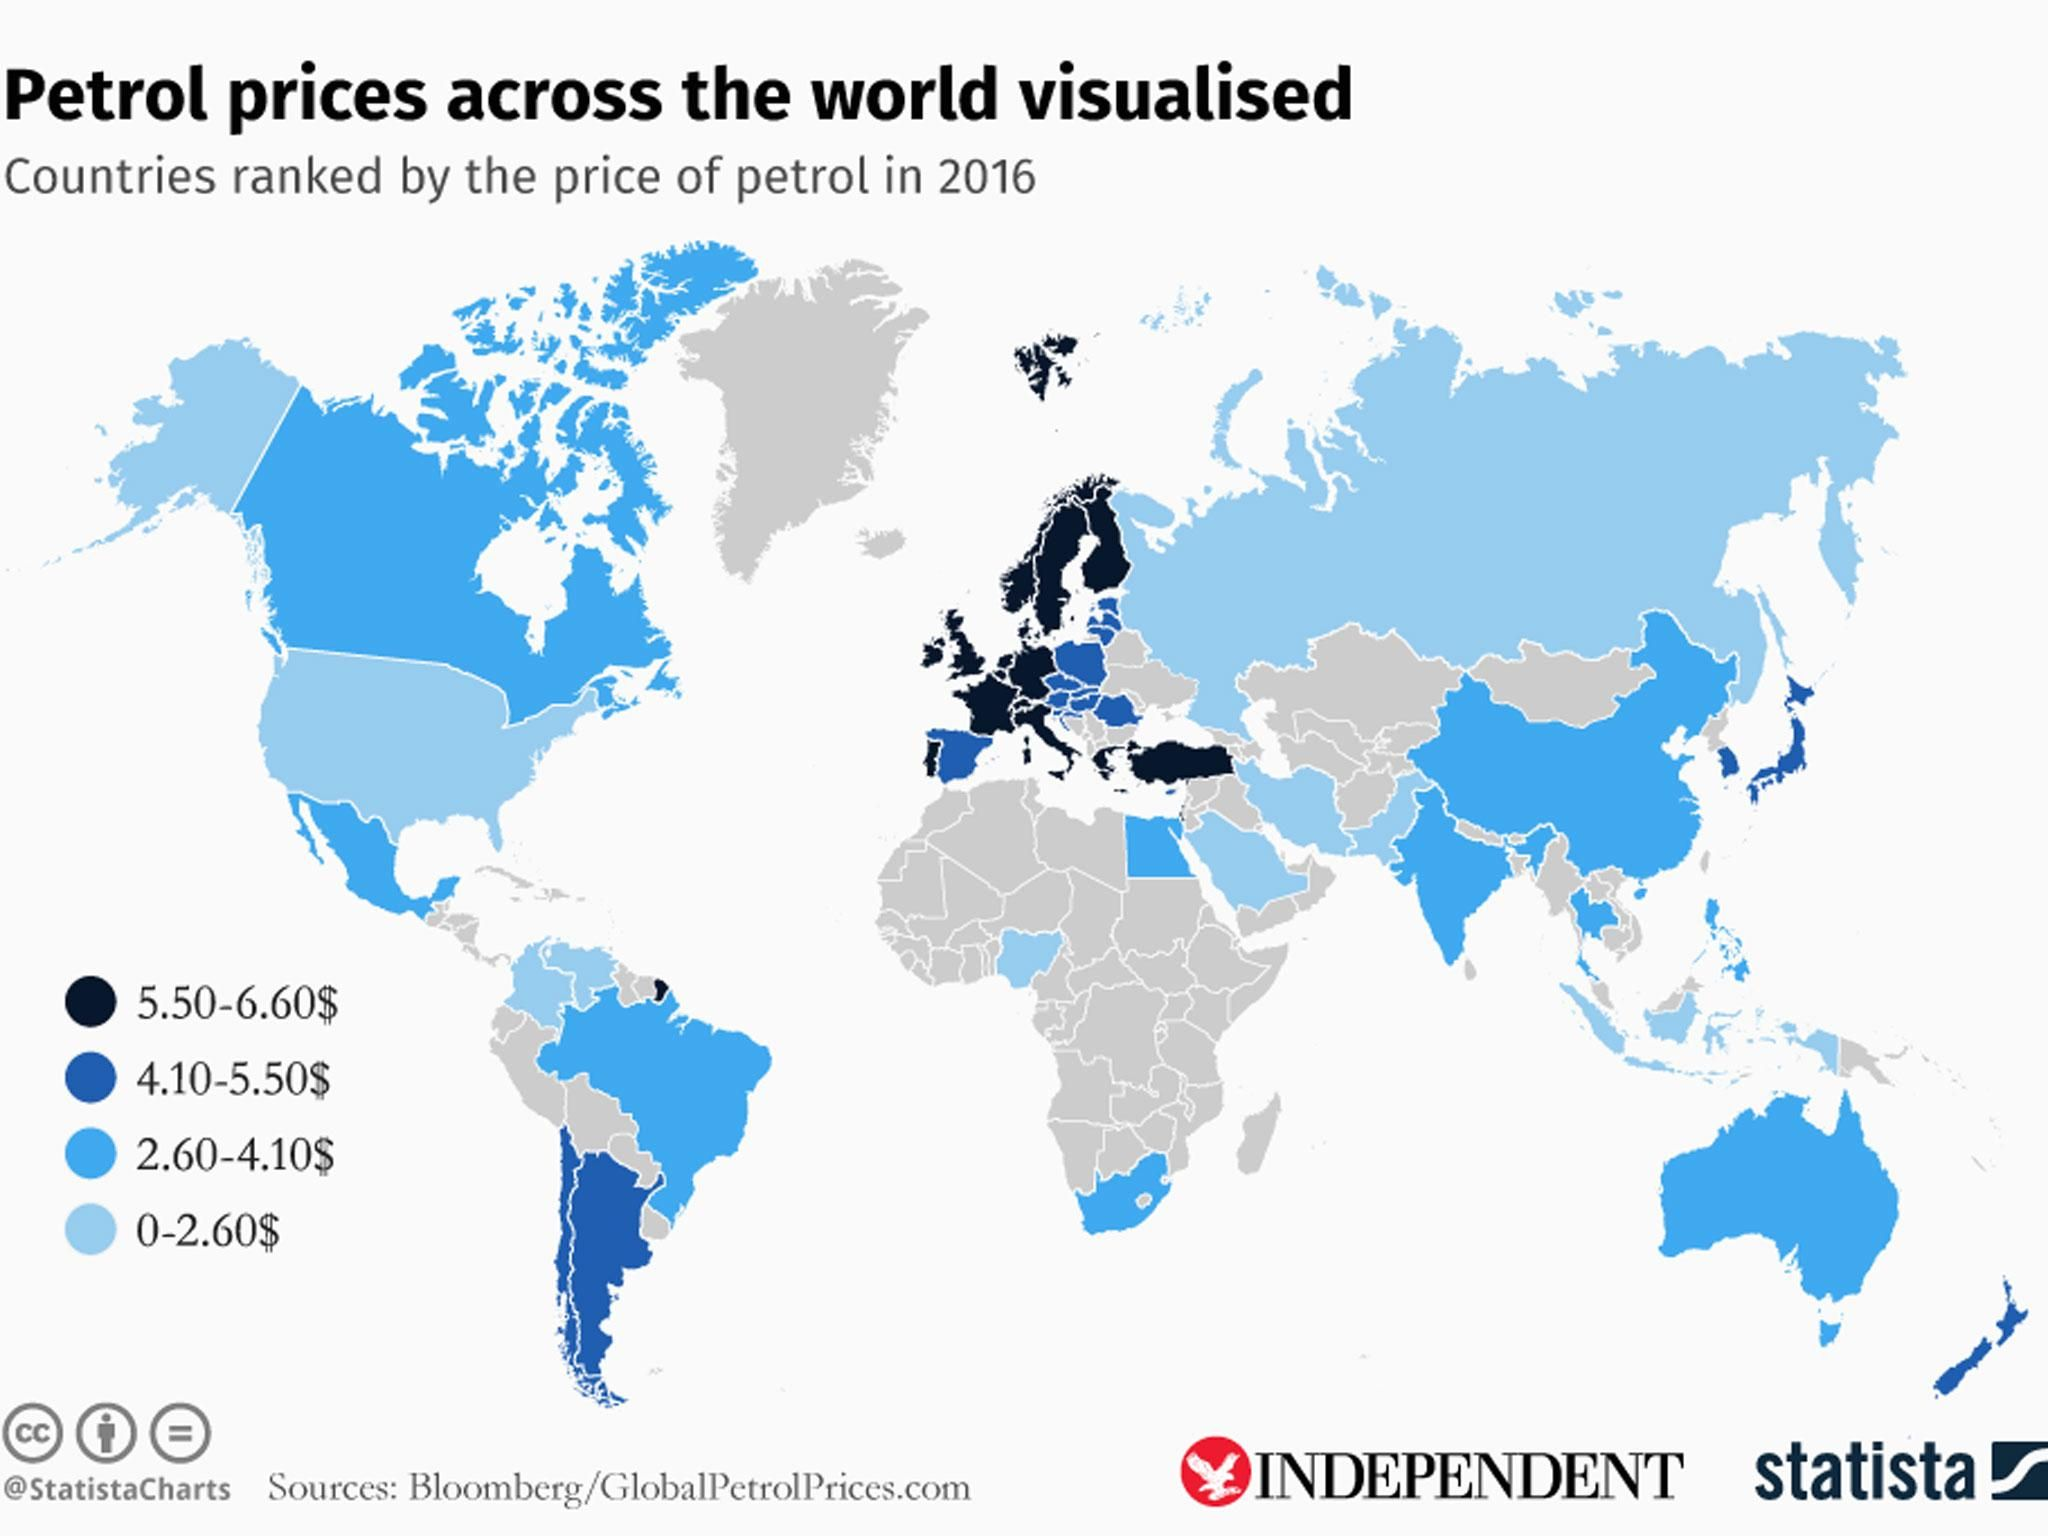 The map that shows the most expensive countries to fill up